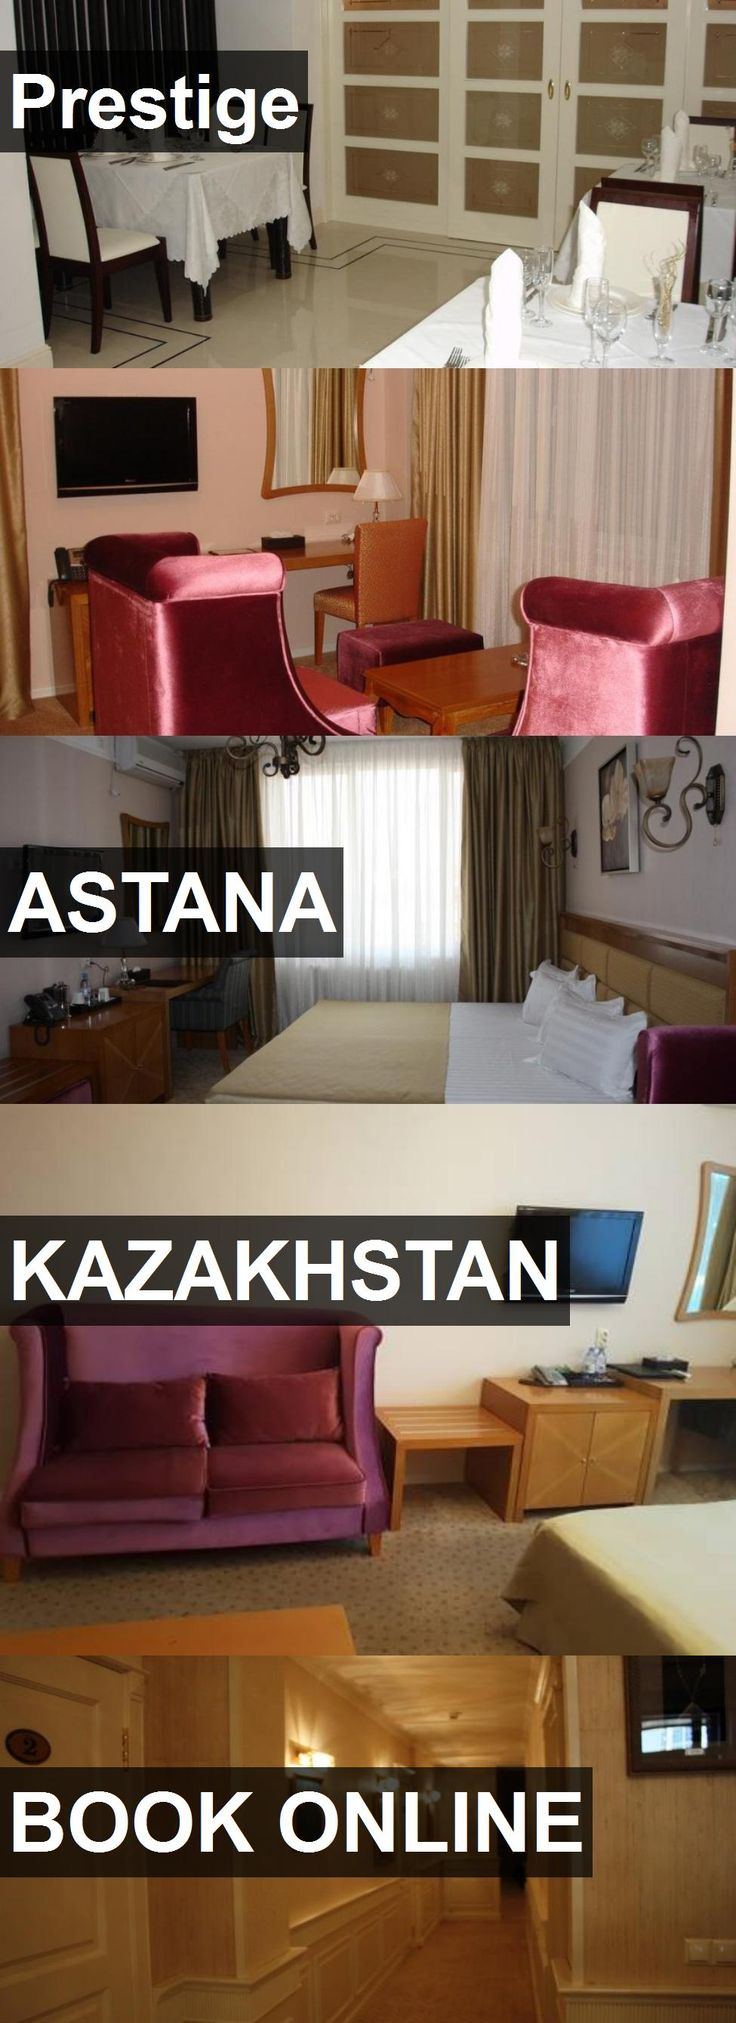 Hotel Prestige in Astana, Kazakhstan. For more information, photos, reviews and best prices please follow the link. #Kazakhstan #Astana #travel #vacation #hotel